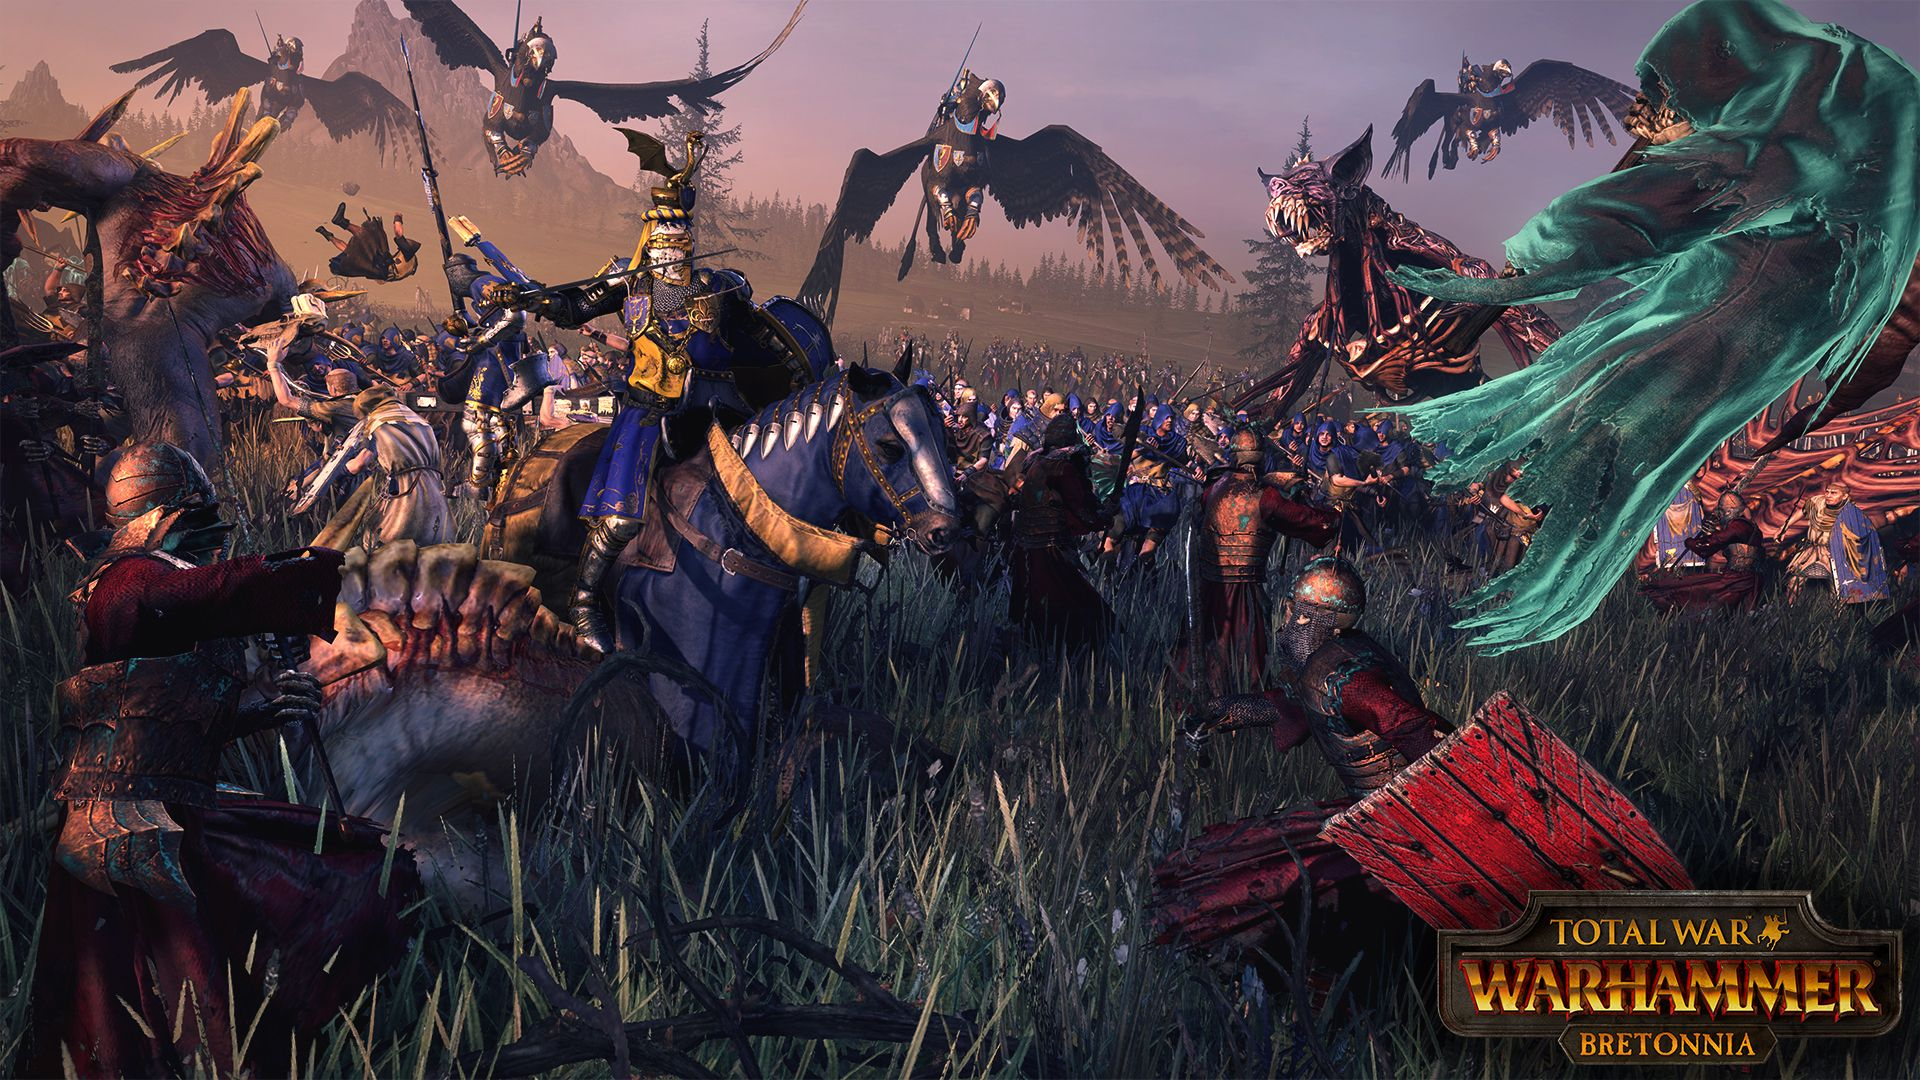 Wallpaper Bretonnia Hd Warhammer Fantasy In 2019 Warhammer